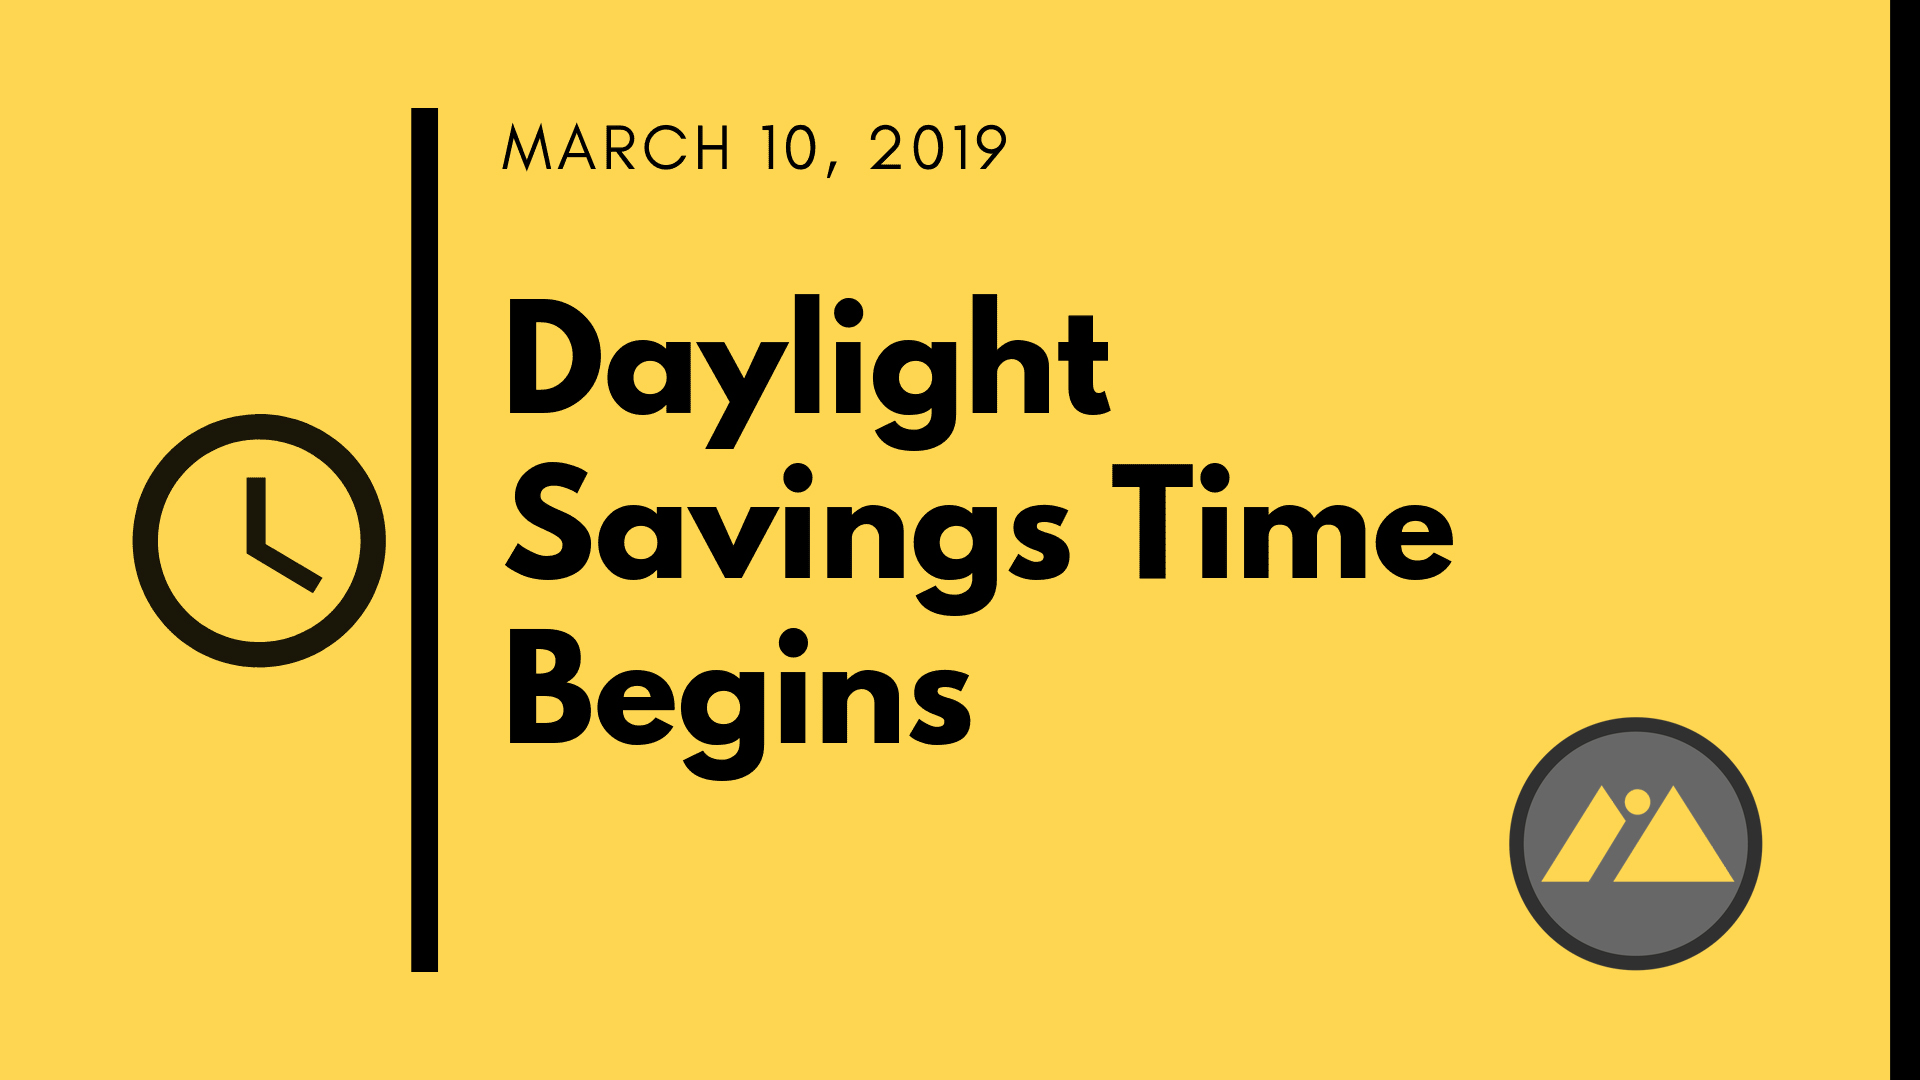 Impact - Daylight-Savings-Time-Begins-2019.jpg